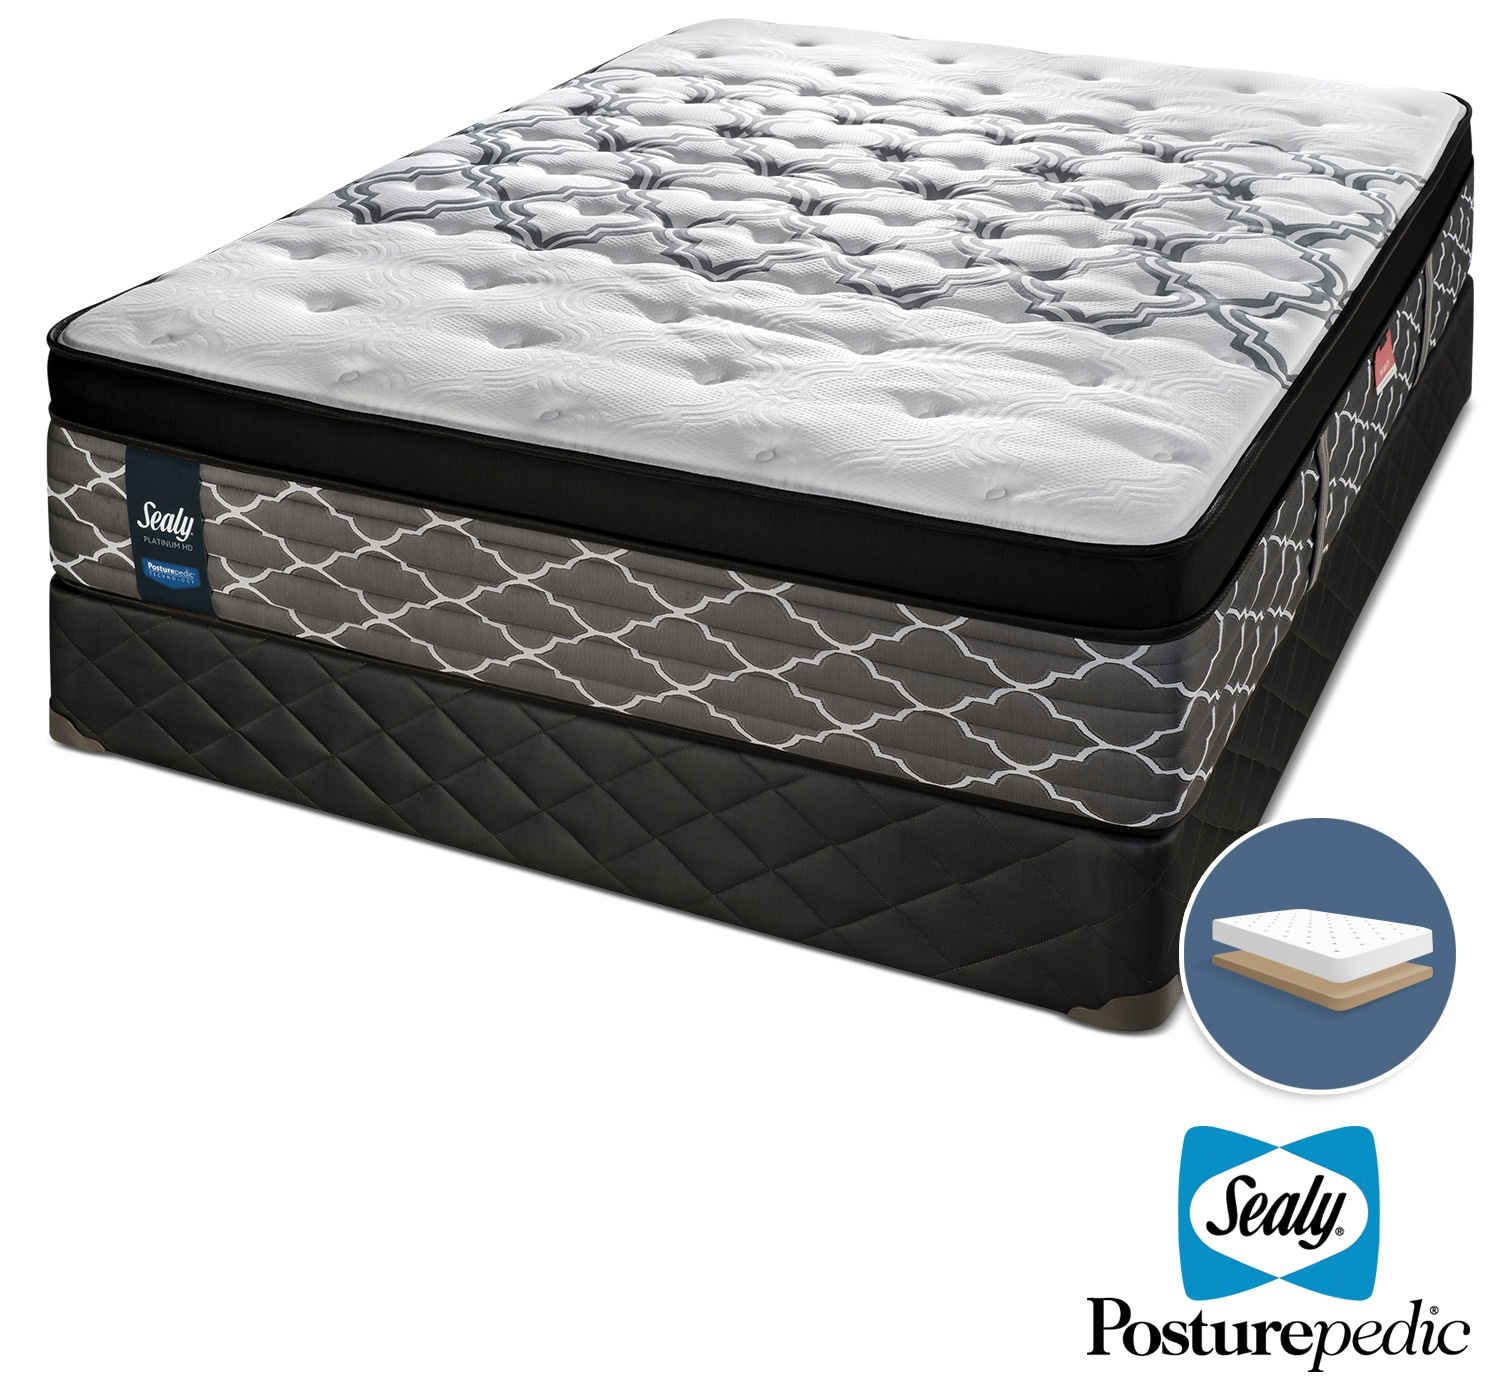 Sealy Dreamy Night Hybrid Firm Queen Mattress and Low-Profile Boxspring Set